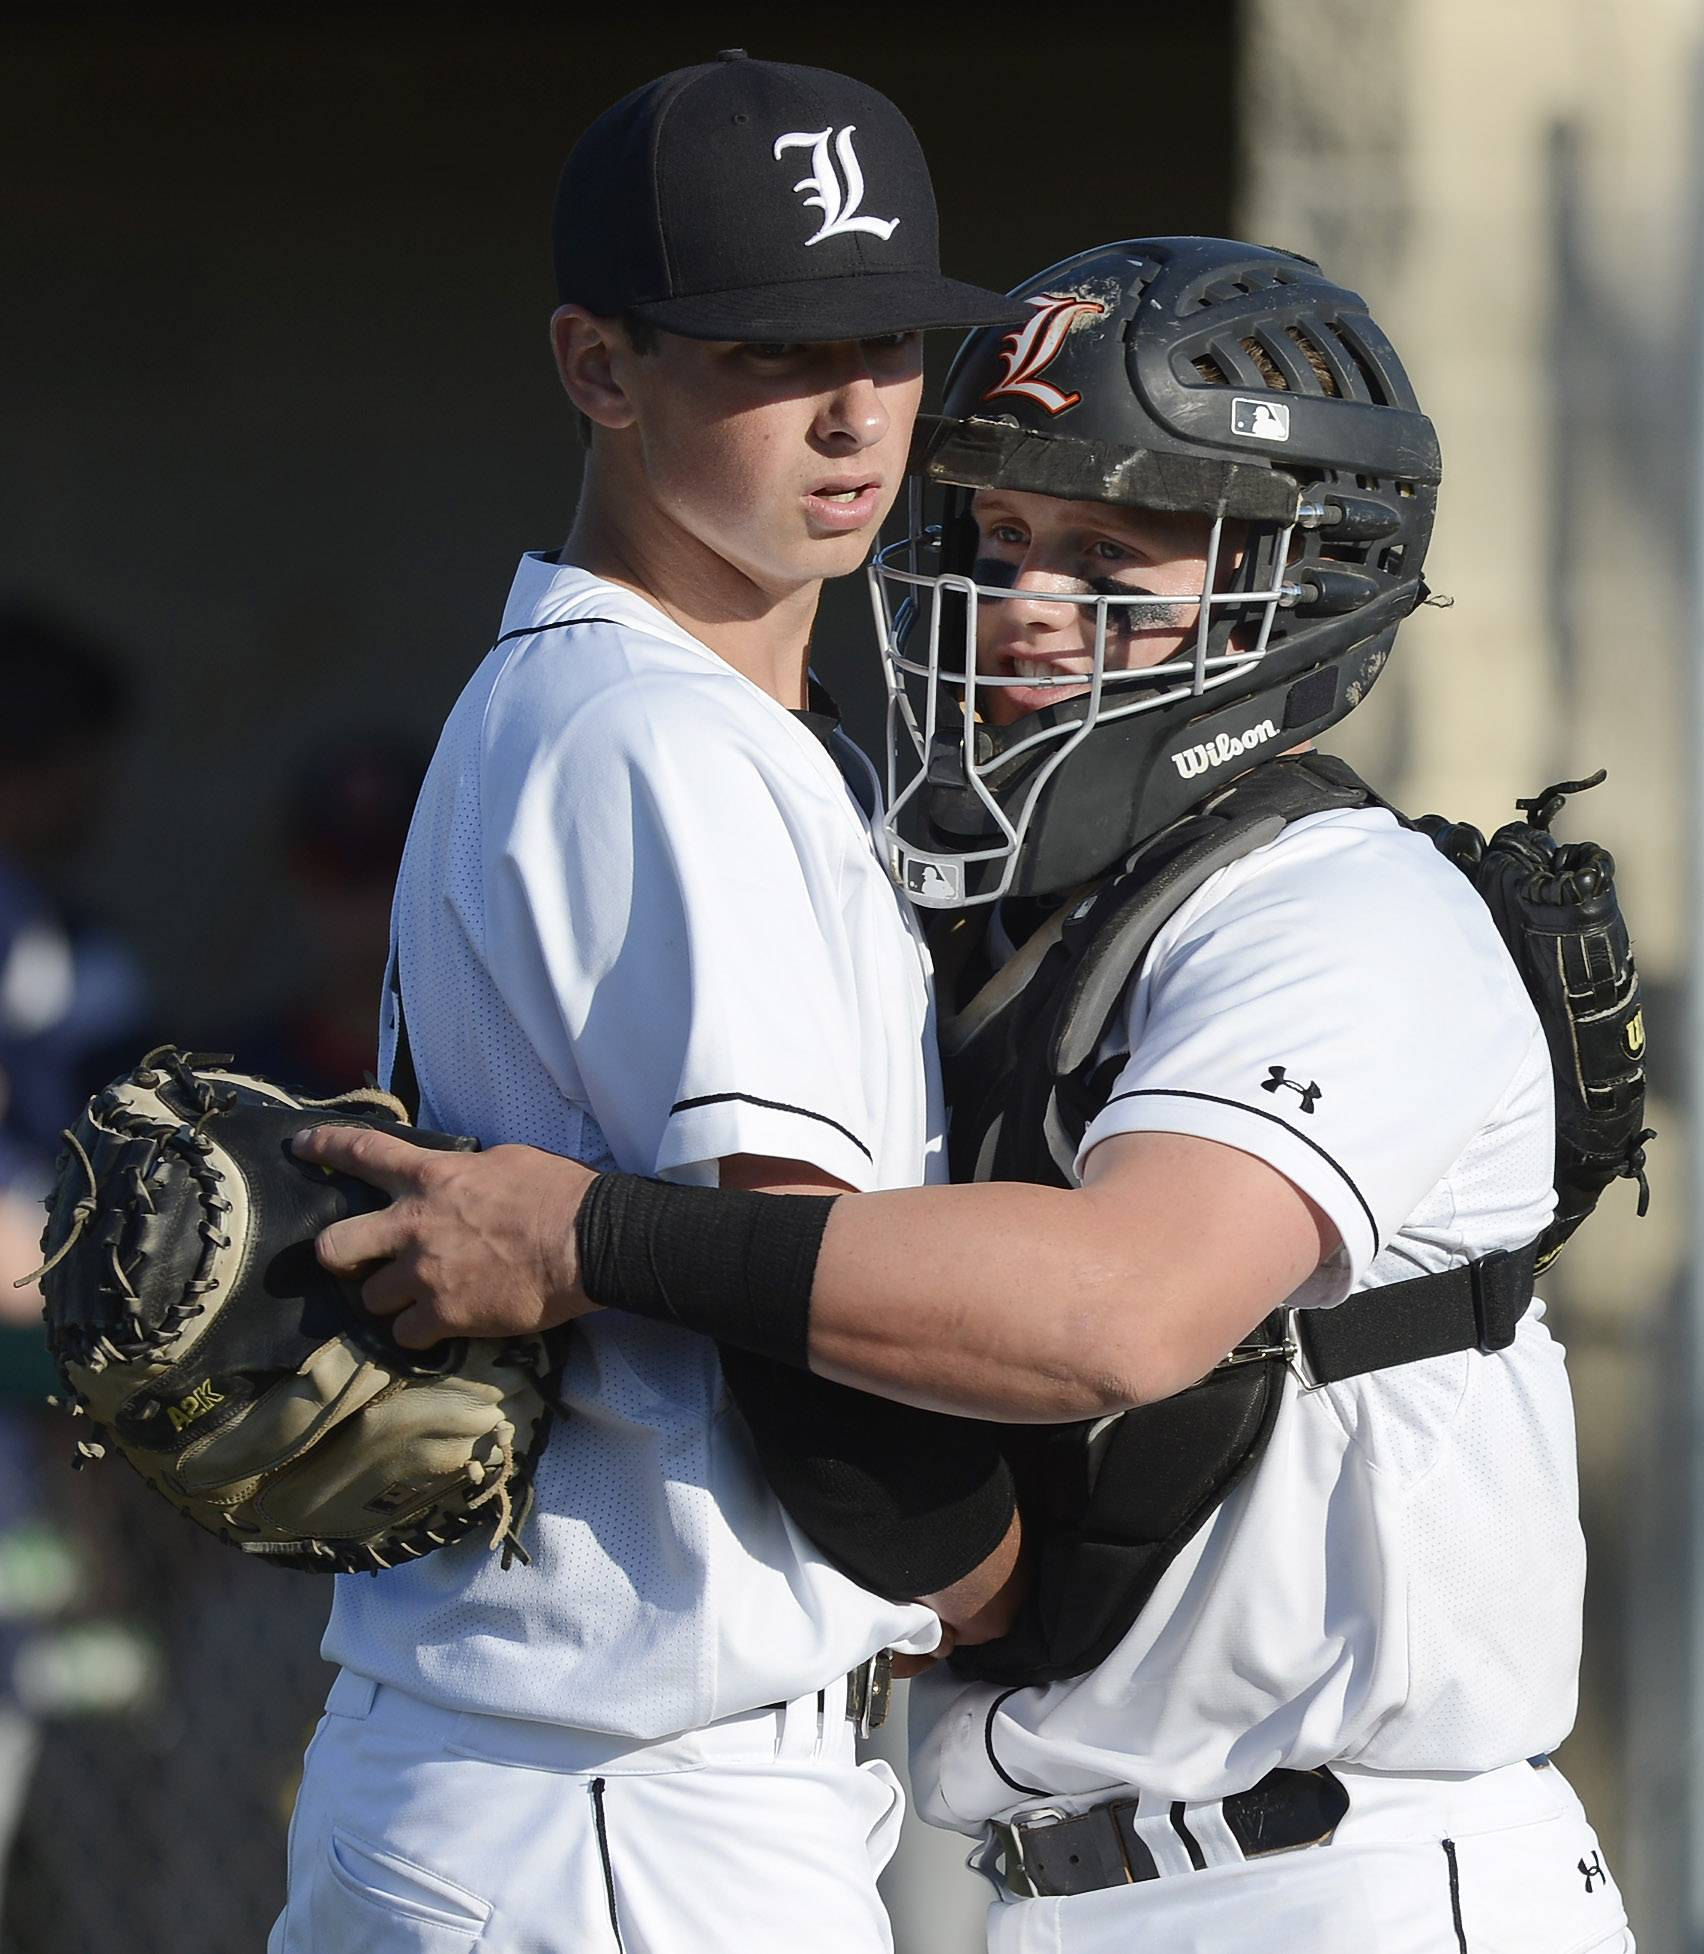 Libertyville pitcher Jeff Barton gets a hug from catcher Matt Reed after defeating St. Viator 7-2 during the Class 4A baseball sectional semifinal at Glenbrook South Wednesday.